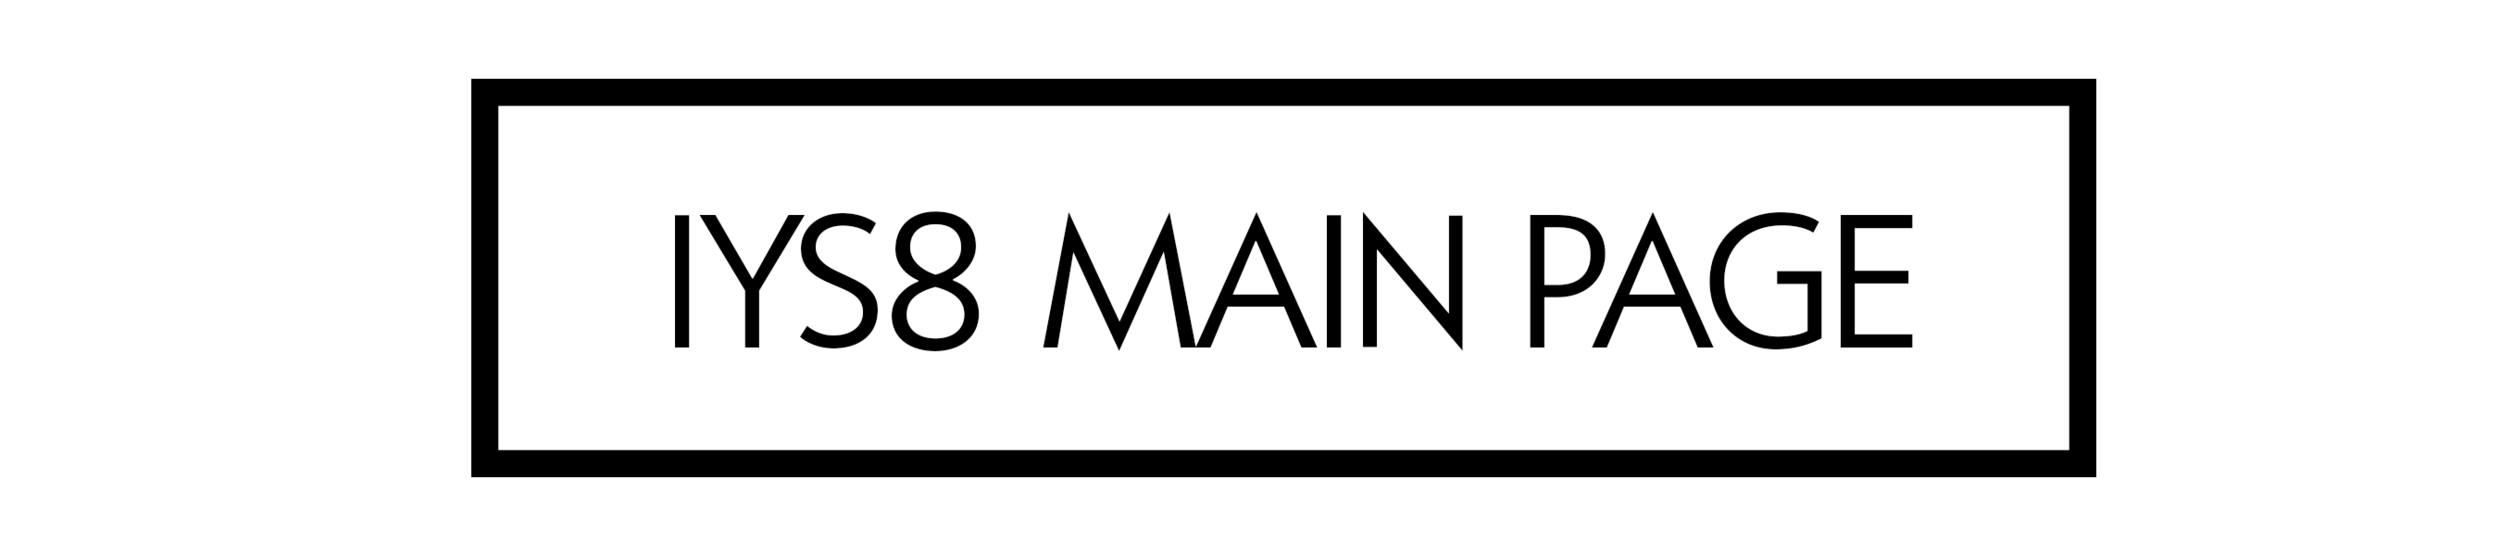 IYS8 Main Page Button.png